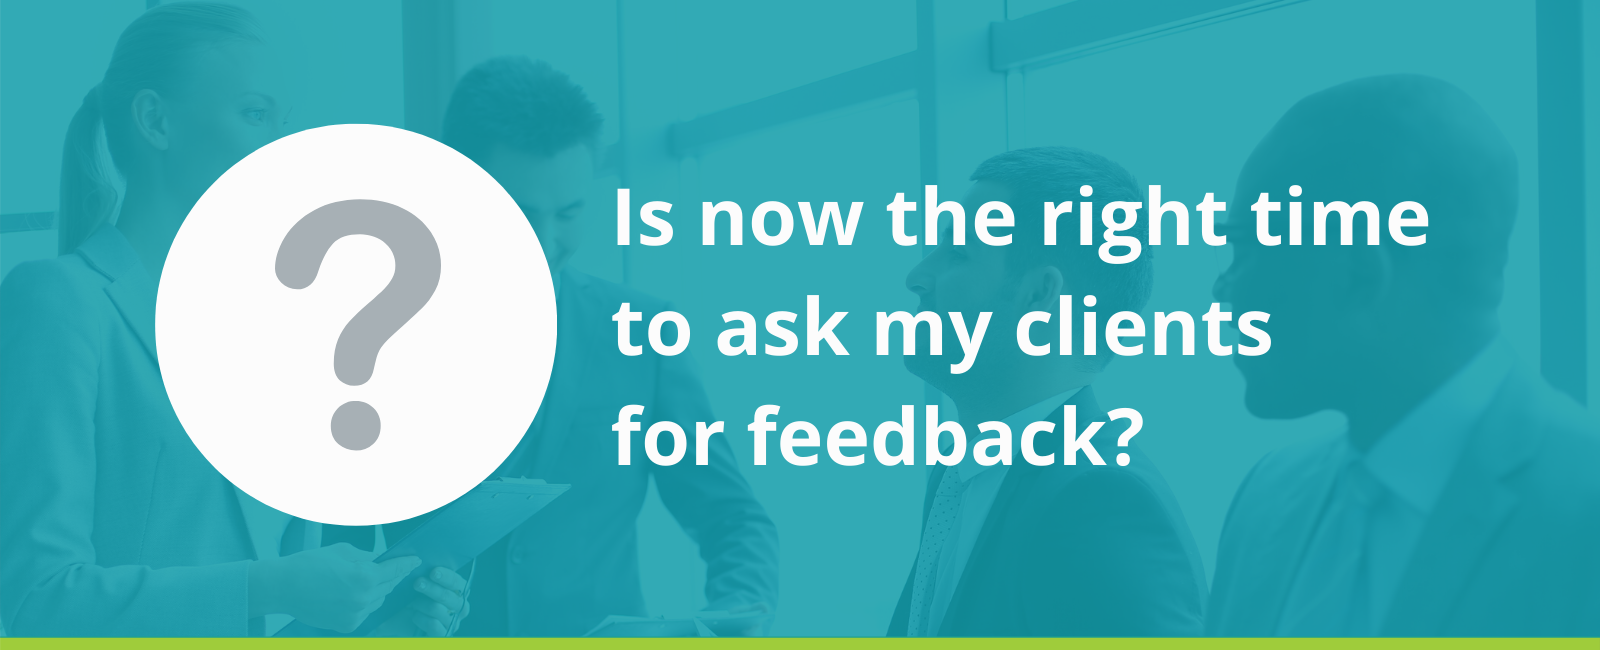 Is now the right time to ask my clients for feedback?